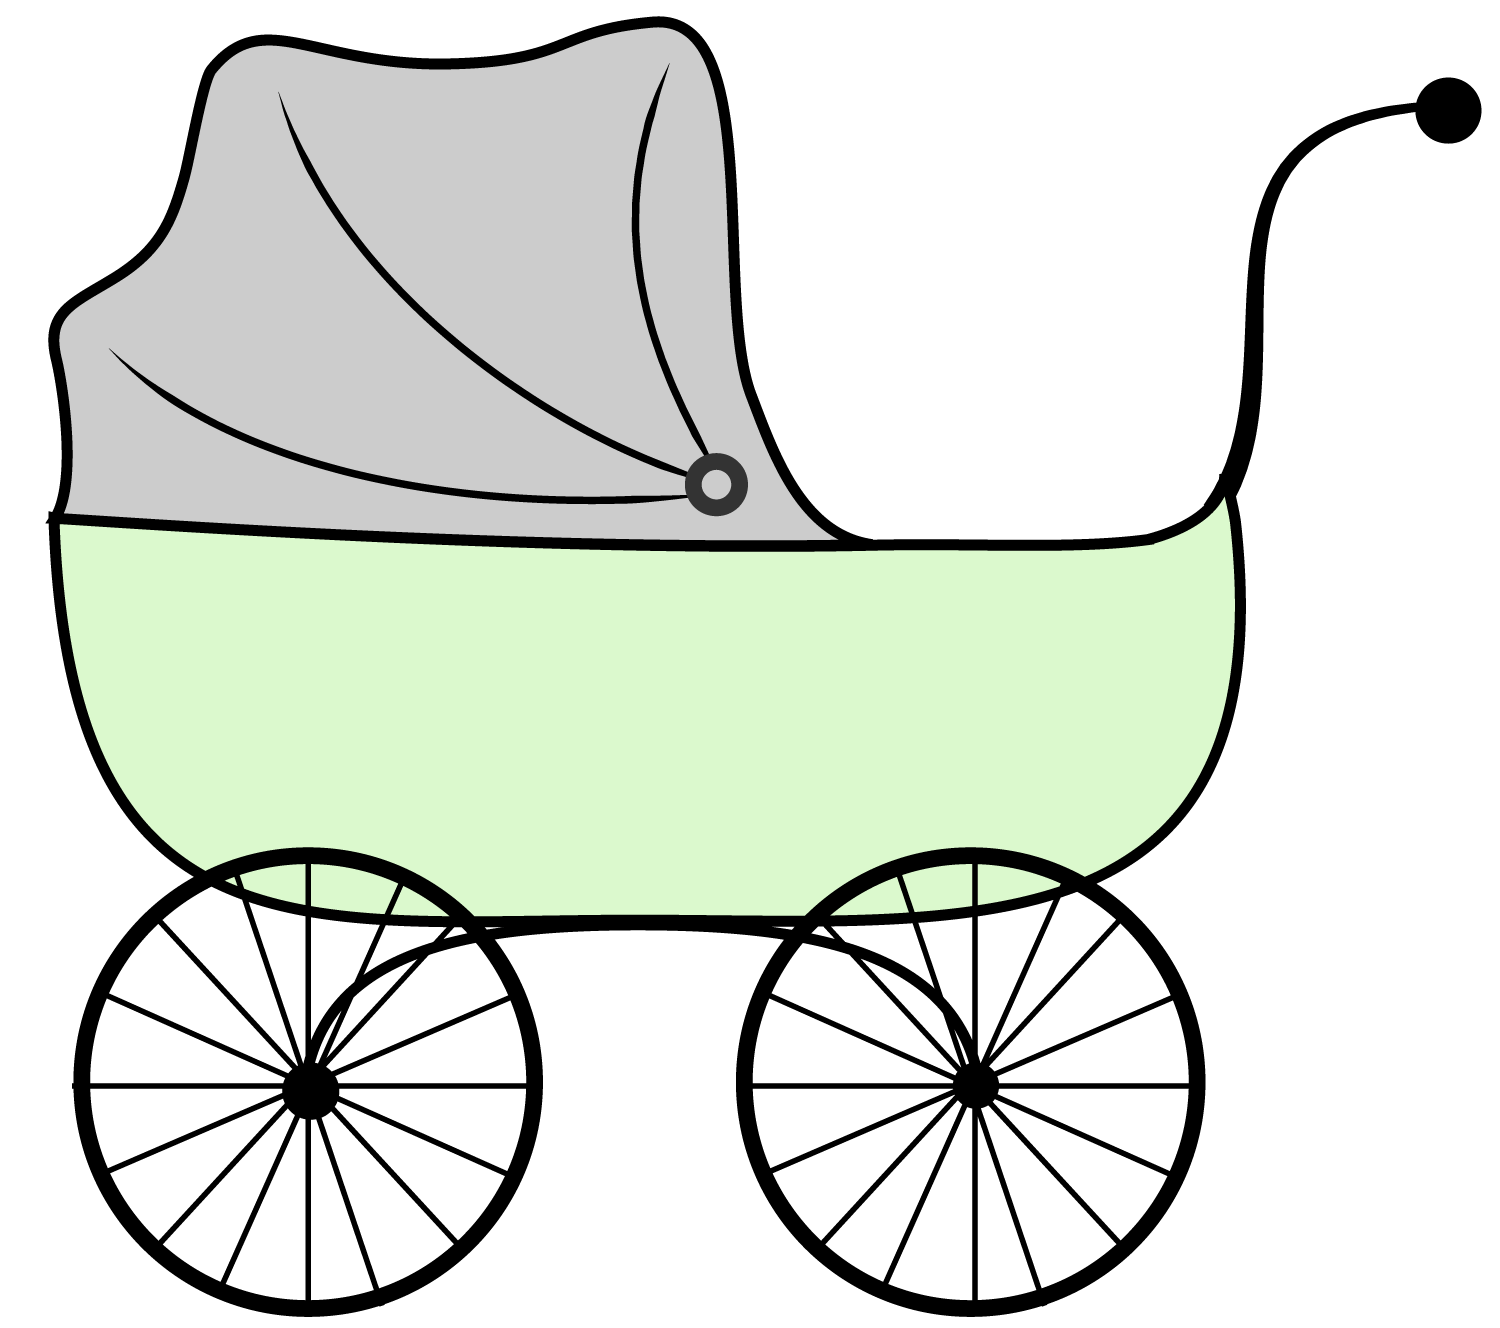 Baby Carriage Clipart - Cliparts.co